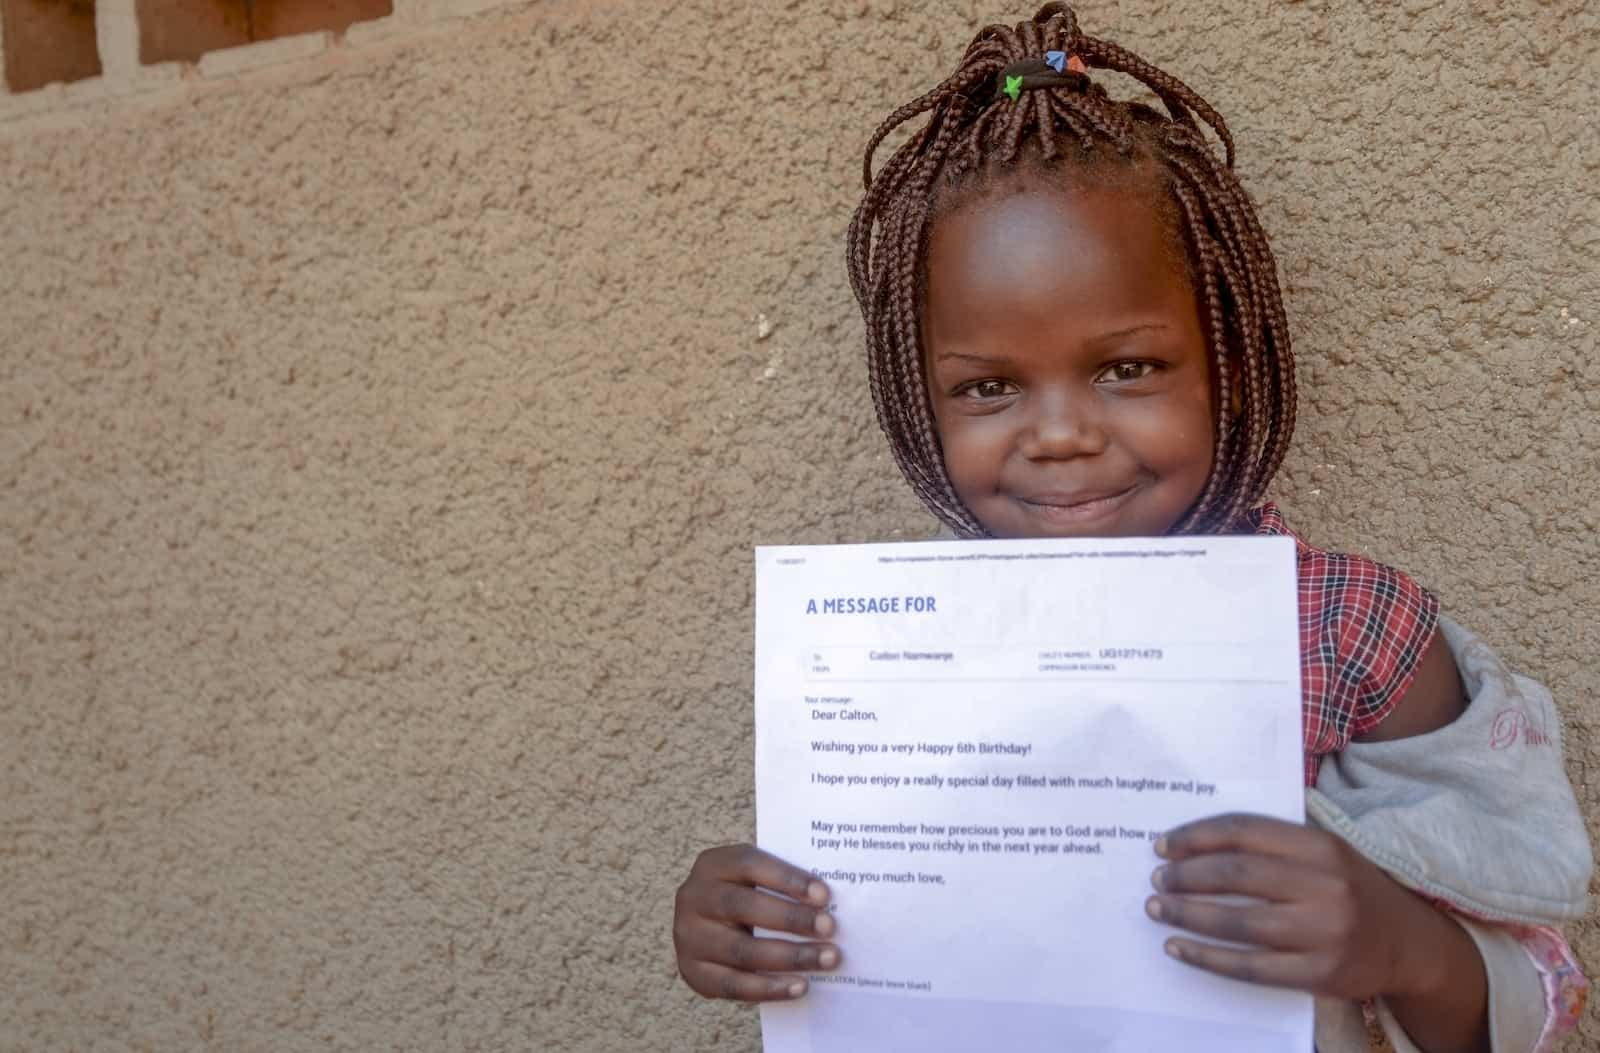 A young girl from Uganda with her hair in braids and a checkered shirt holds a letter in front of her and smiles.